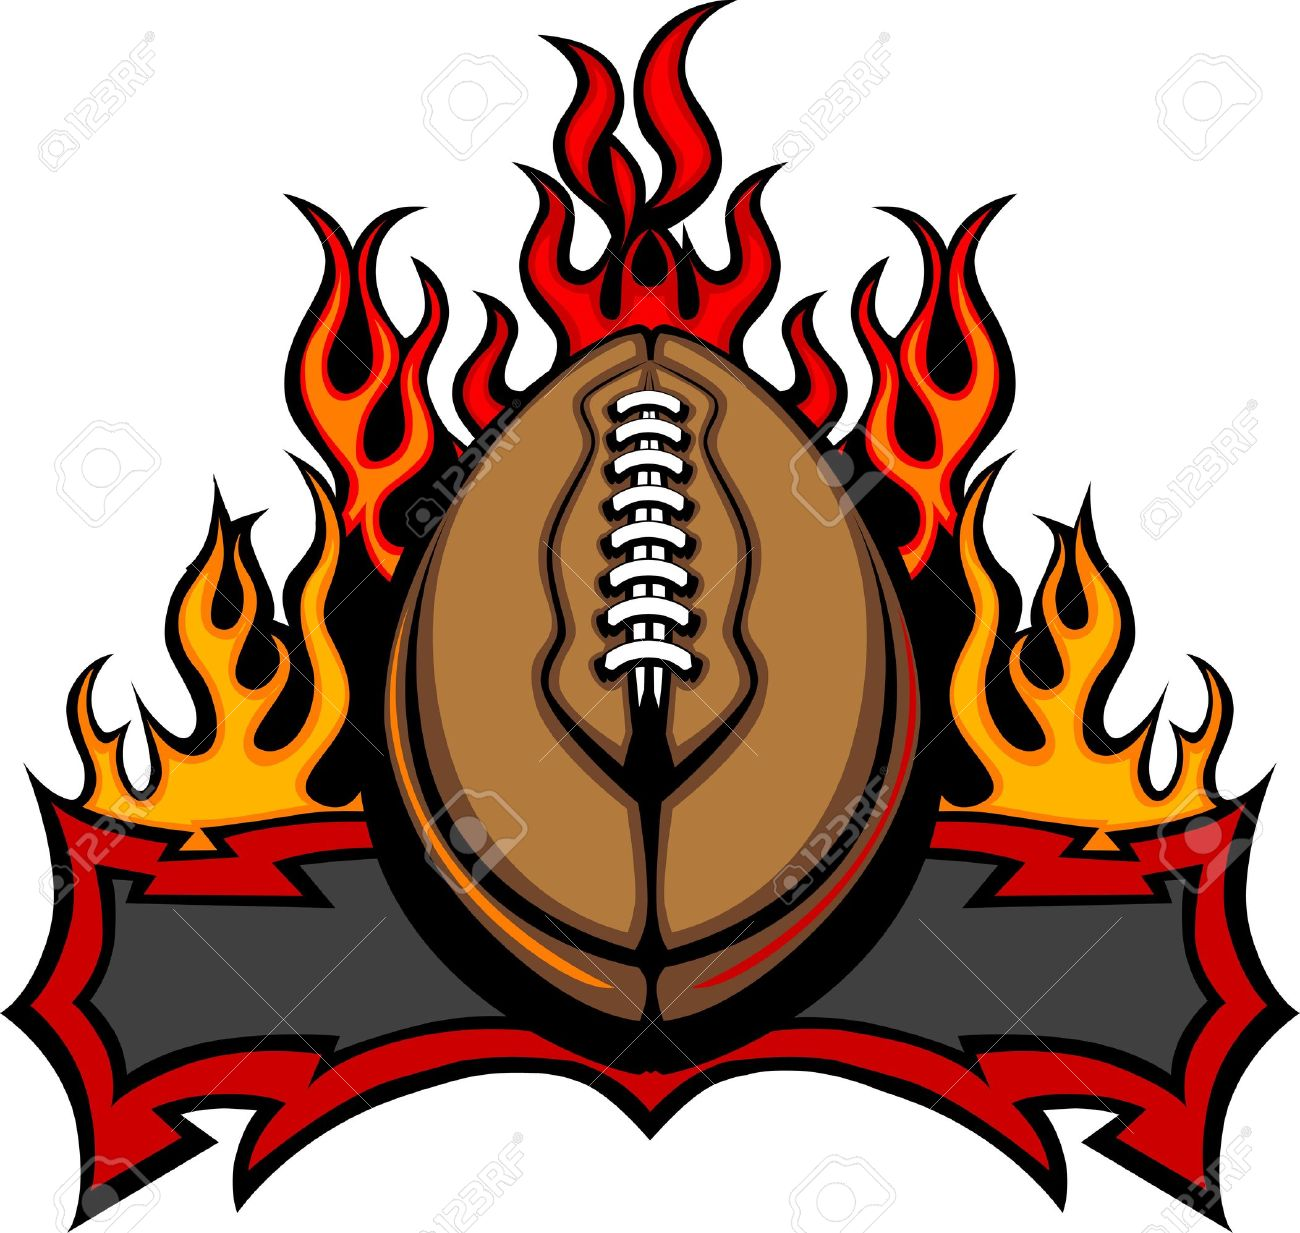 Graphic American Football Vector Image Template With Flames.